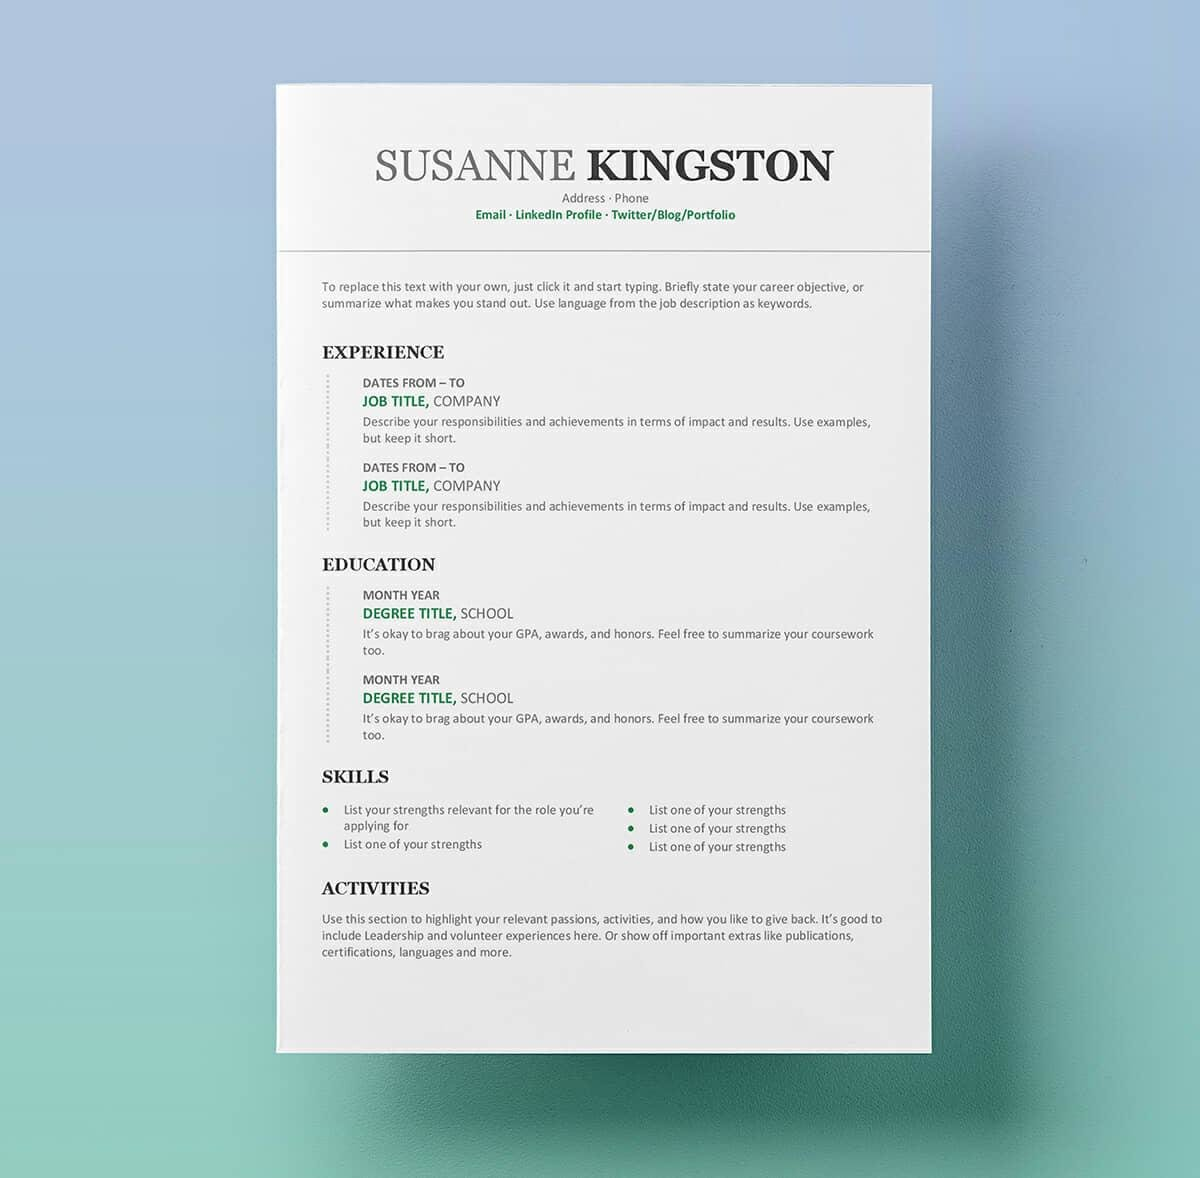 Elegant Microsoft Word Resume With Green Details